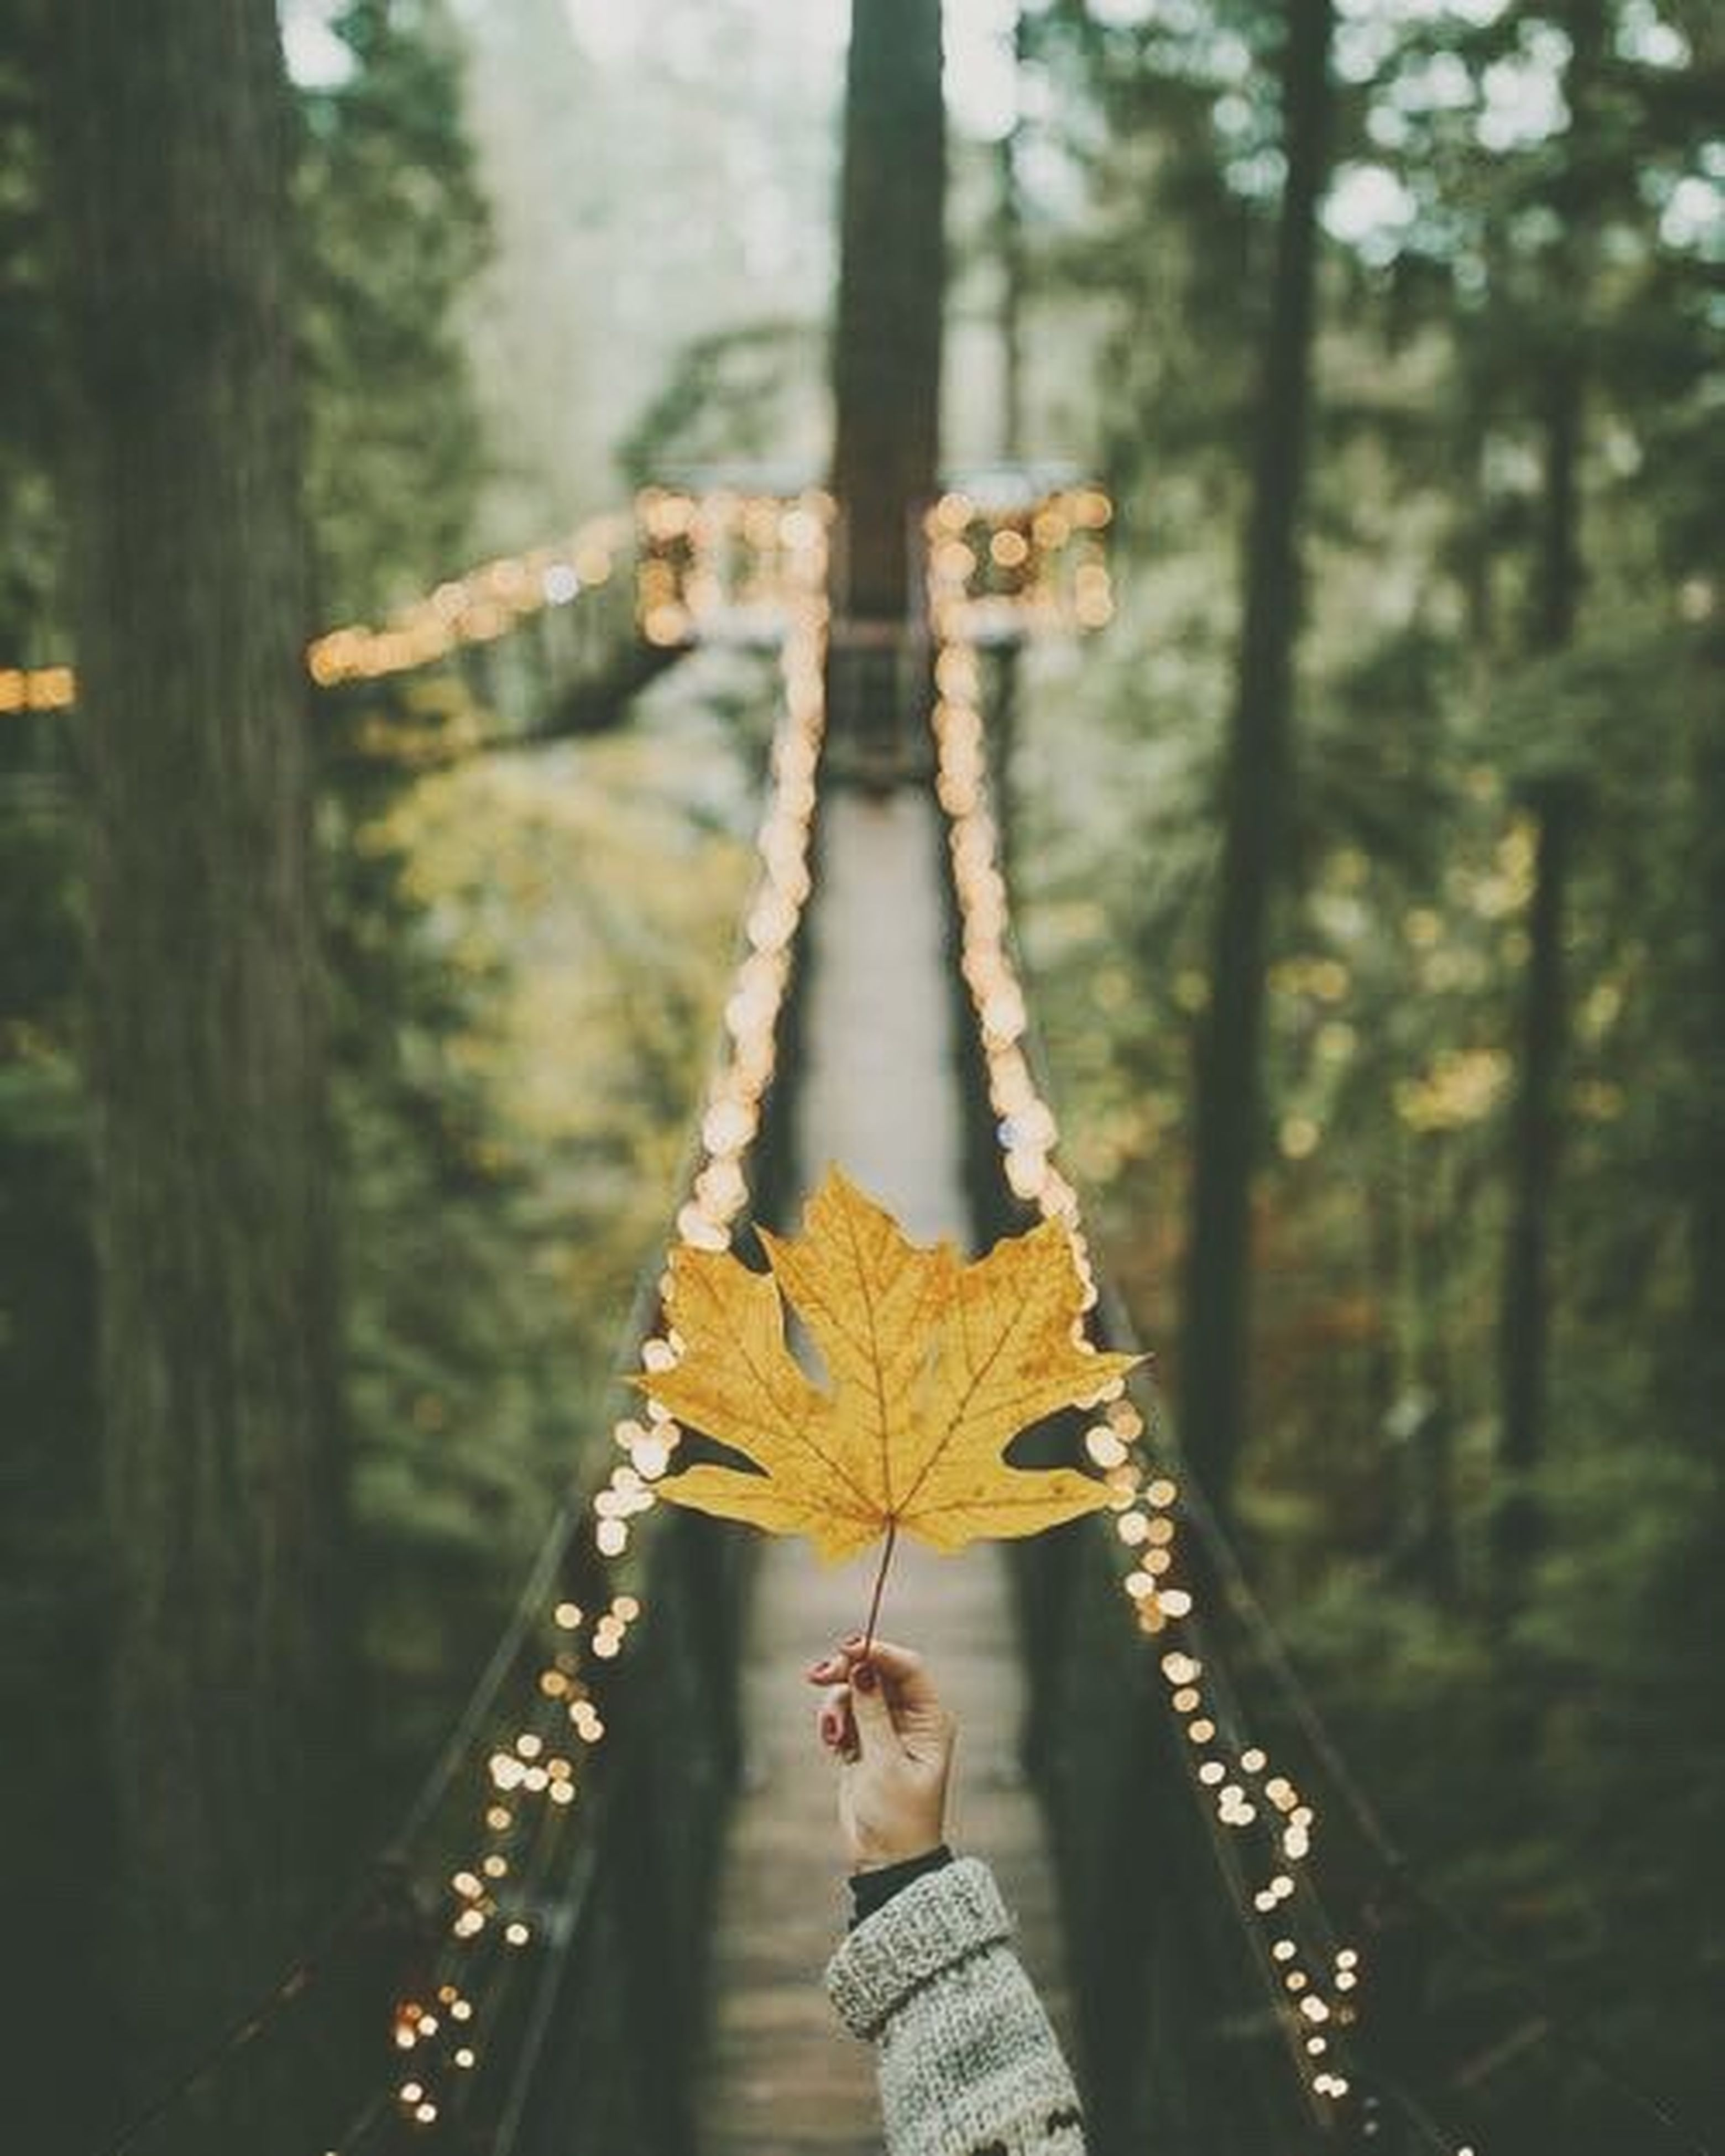 tree, forest, hanging, landscape, outdoors, branch, nature, day, no people